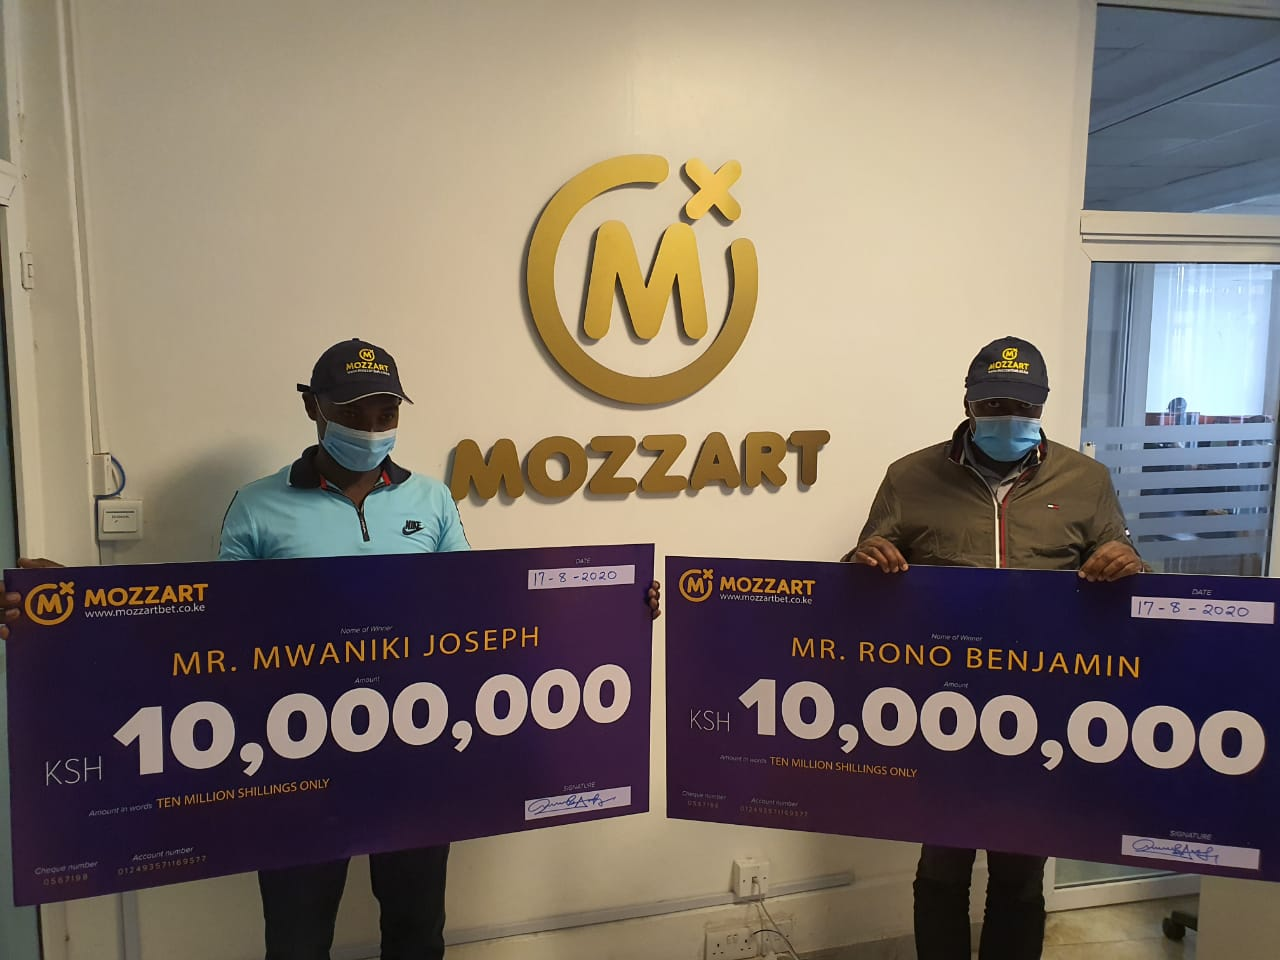 Two lucky gamers strike it rich with Ksh. 10M each from the Mozzart Daily Jackpot on the same day!